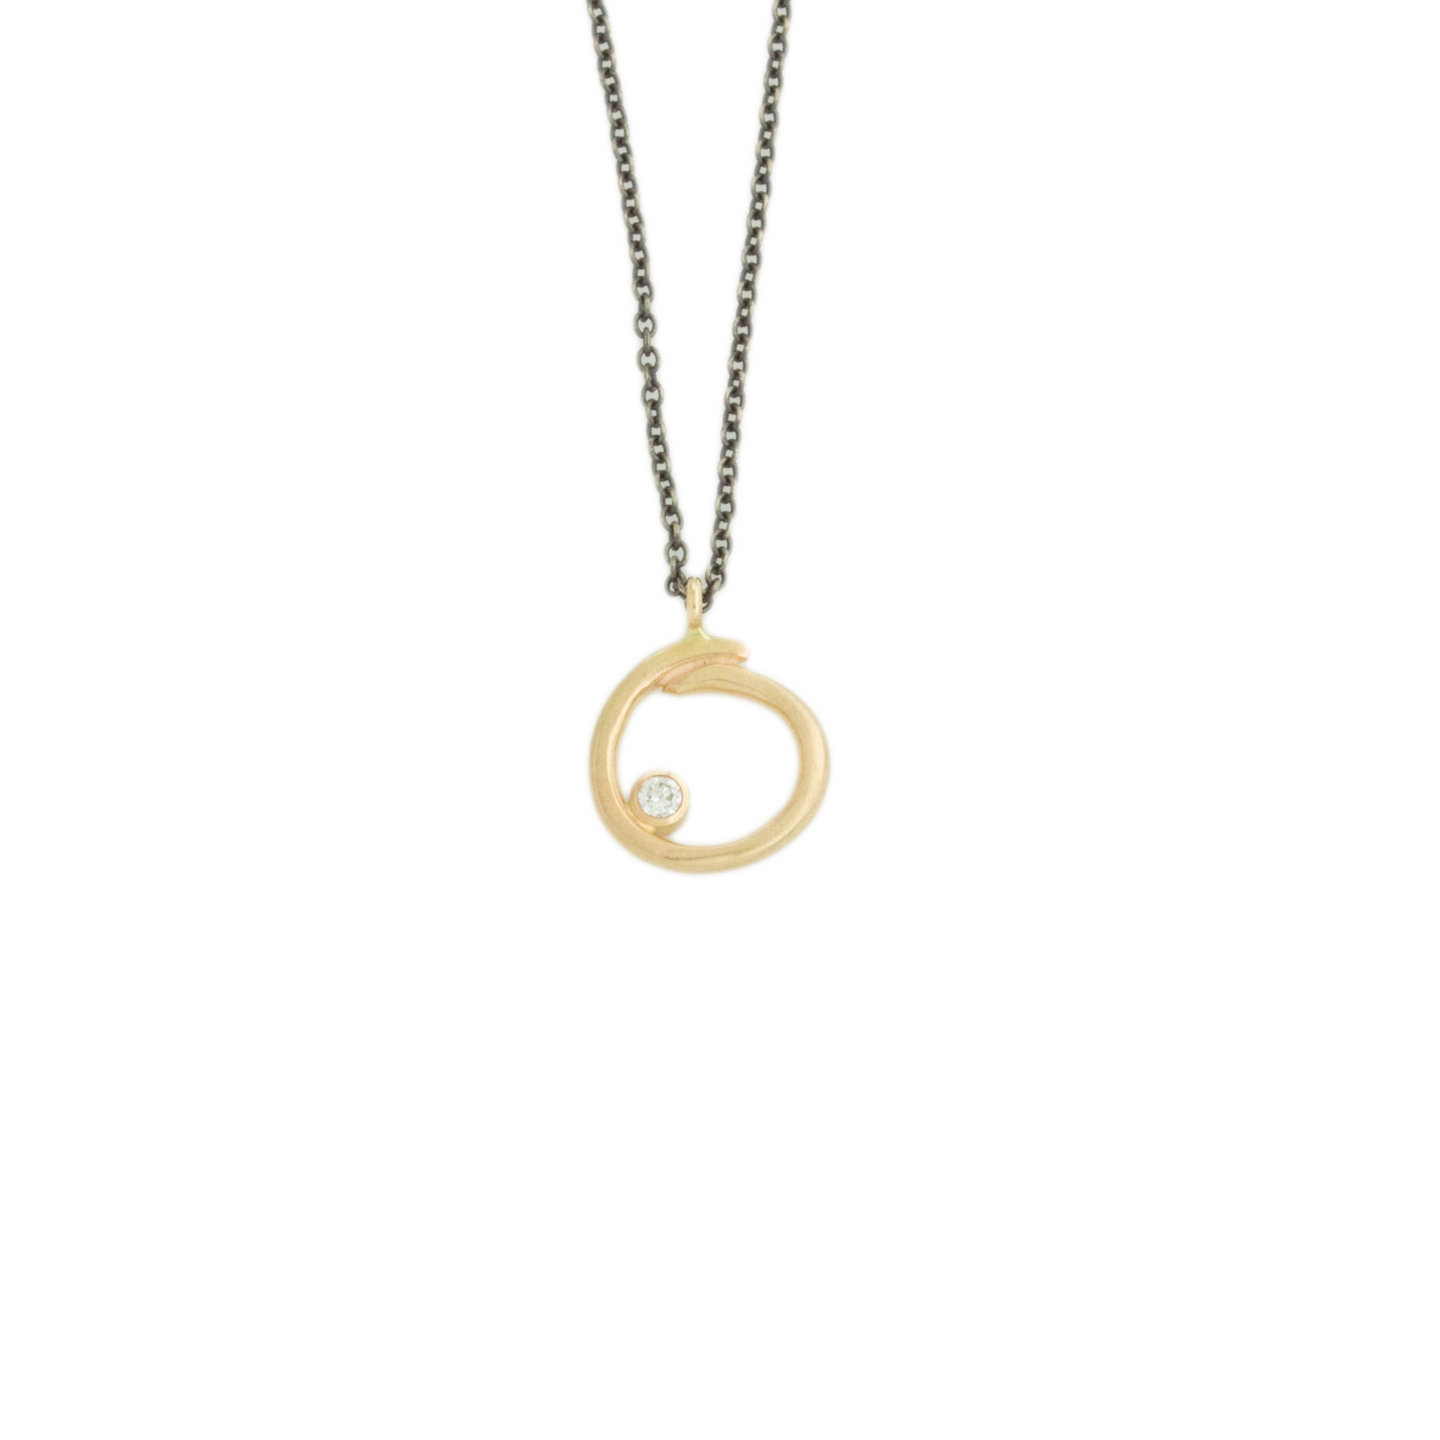 Oxidized Sterling & 14K Gold Diamond Curl Necklace